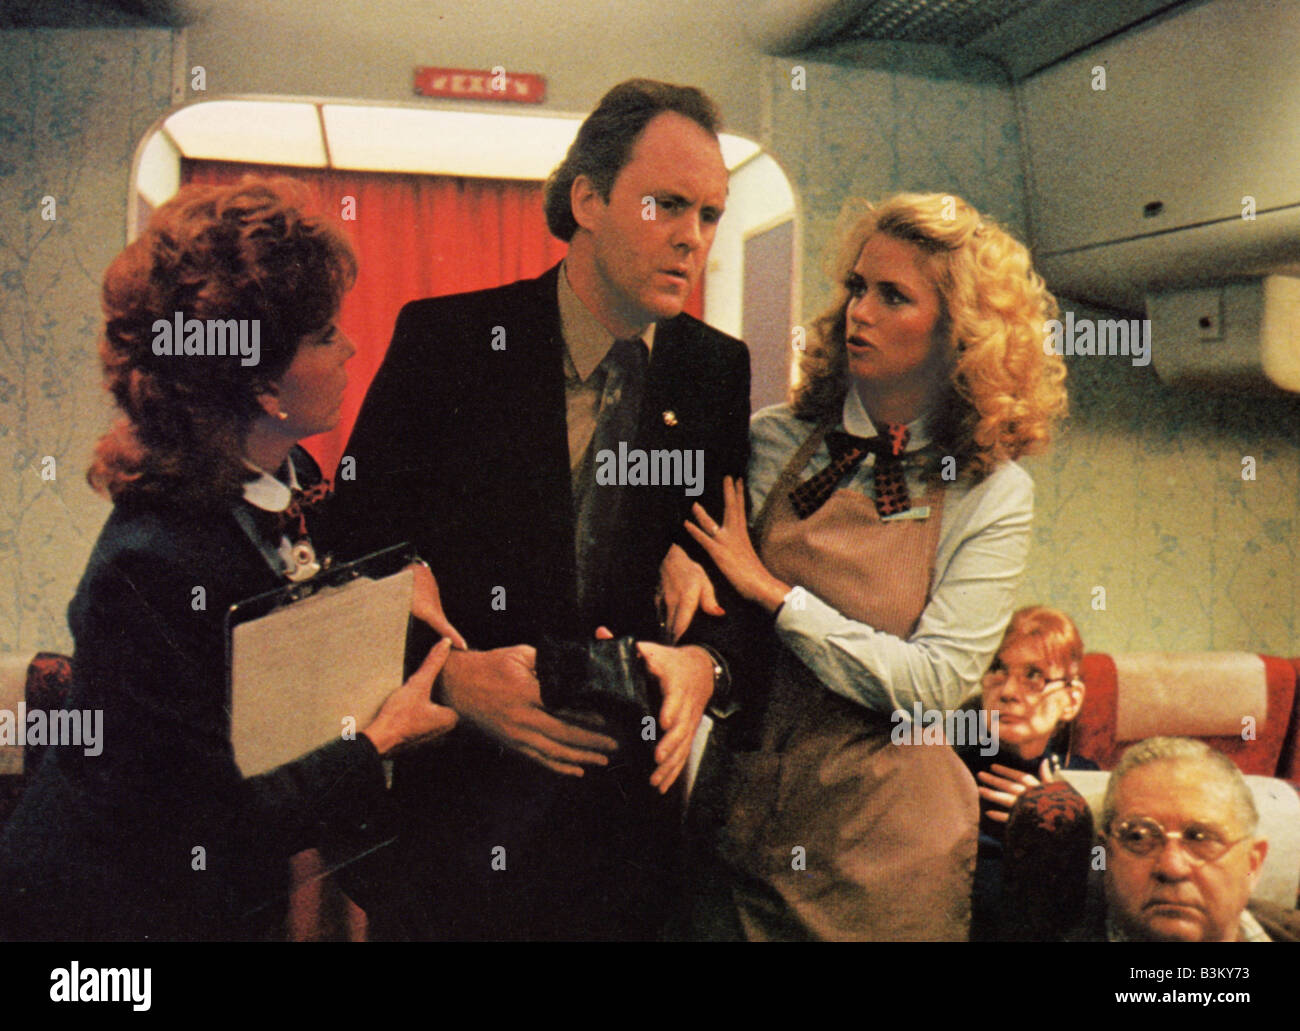 TWILIGHT ZONE:  THE MOVIE  1983 Warner film with John Lithgow - Stock Image